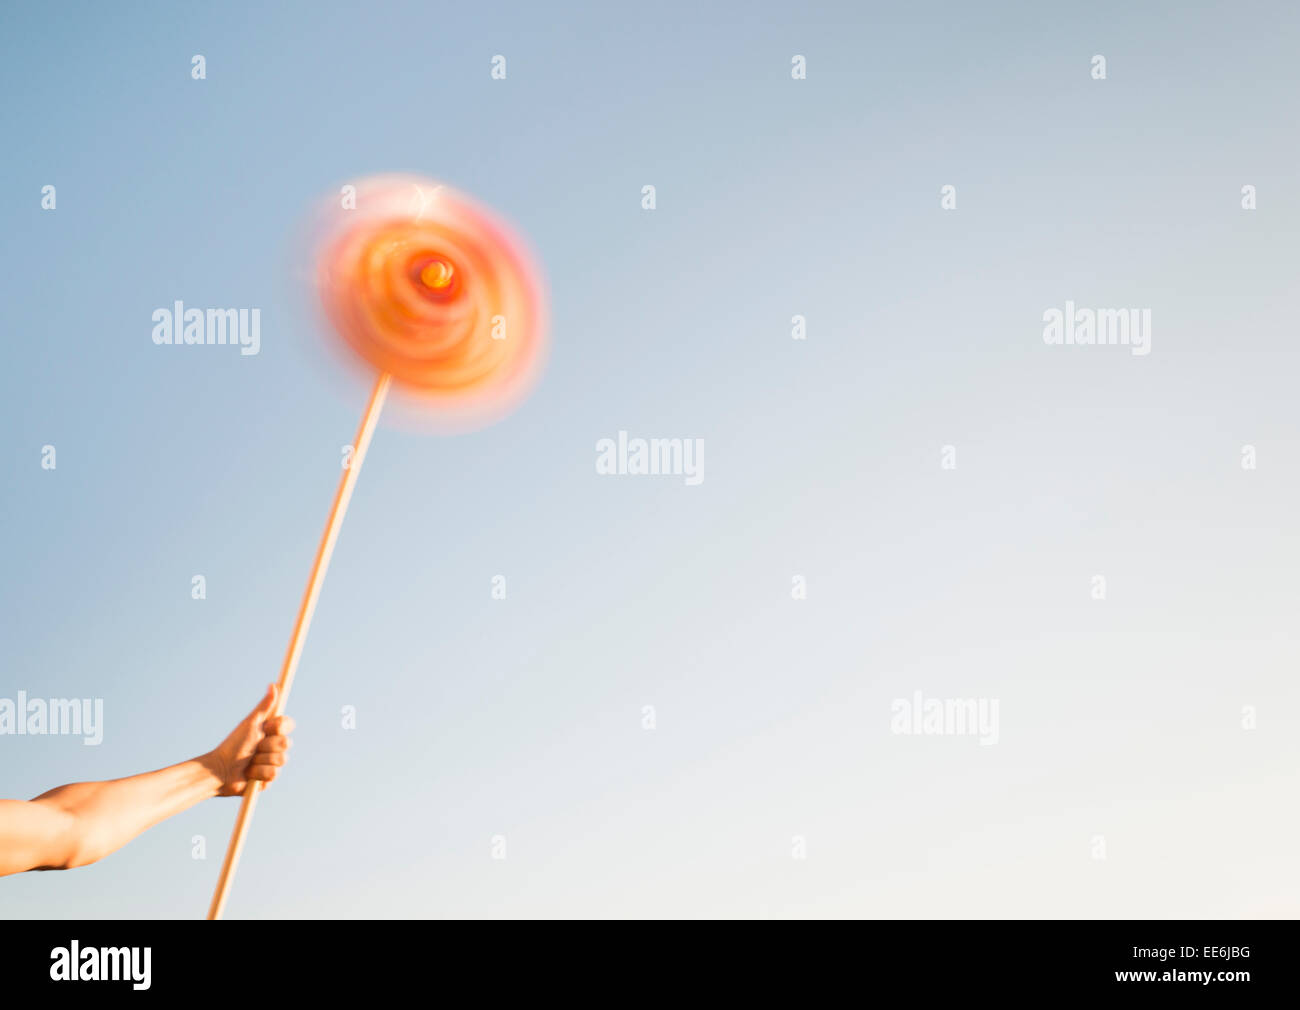 Hand holding pinwheel toy spinning in the wind. Conceptual image of freedom, carefree lifestyle and having fun. - Stock Image